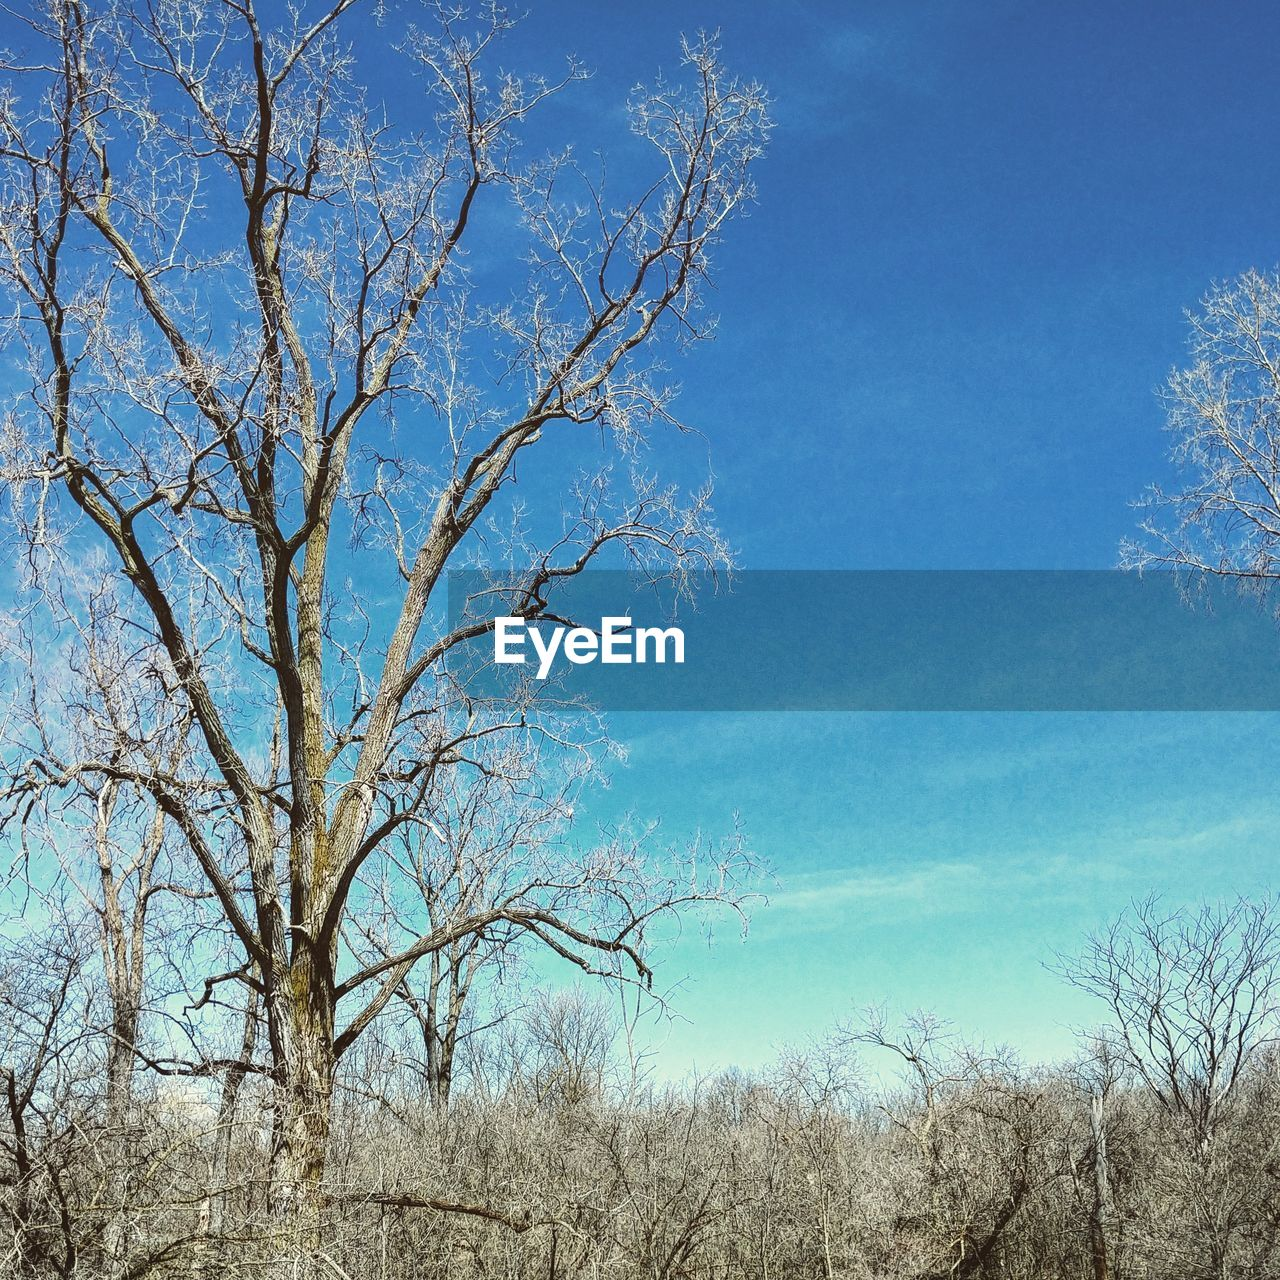 tree, plant, sky, bare tree, blue, branch, nature, tranquility, beauty in nature, day, no people, scenics - nature, outdoors, tranquil scene, clear sky, low angle view, land, non-urban scene, growth, dead plant